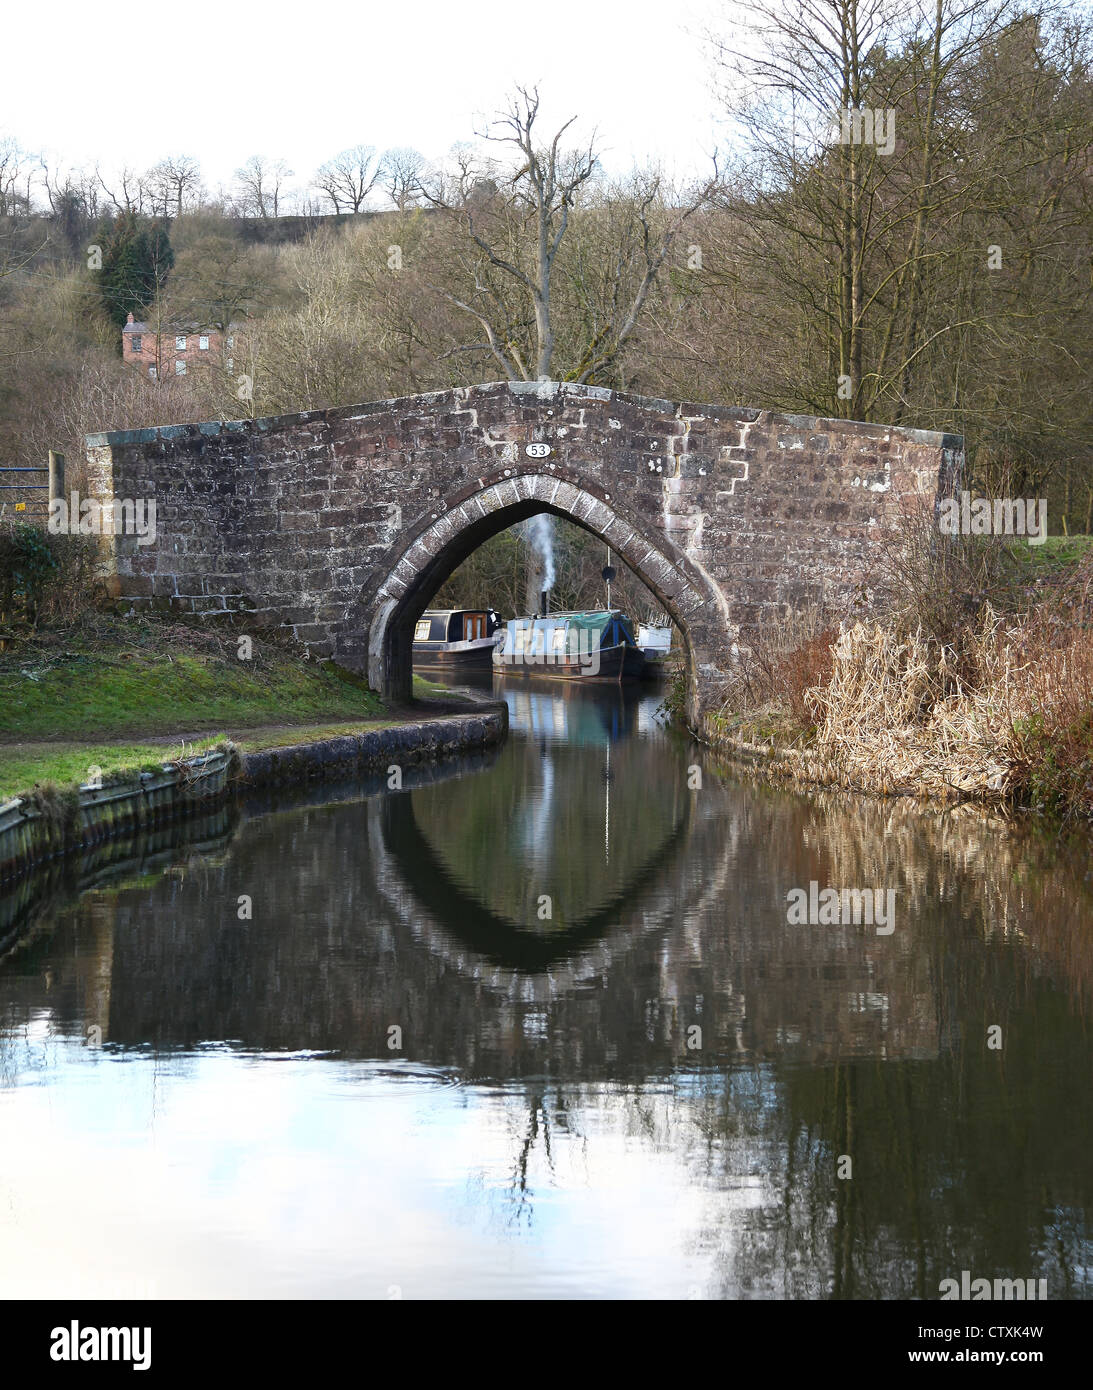 Cherry Eye bridge over the Caldon canal Churnet Valley near Froghall Staffordshire - Stock Image